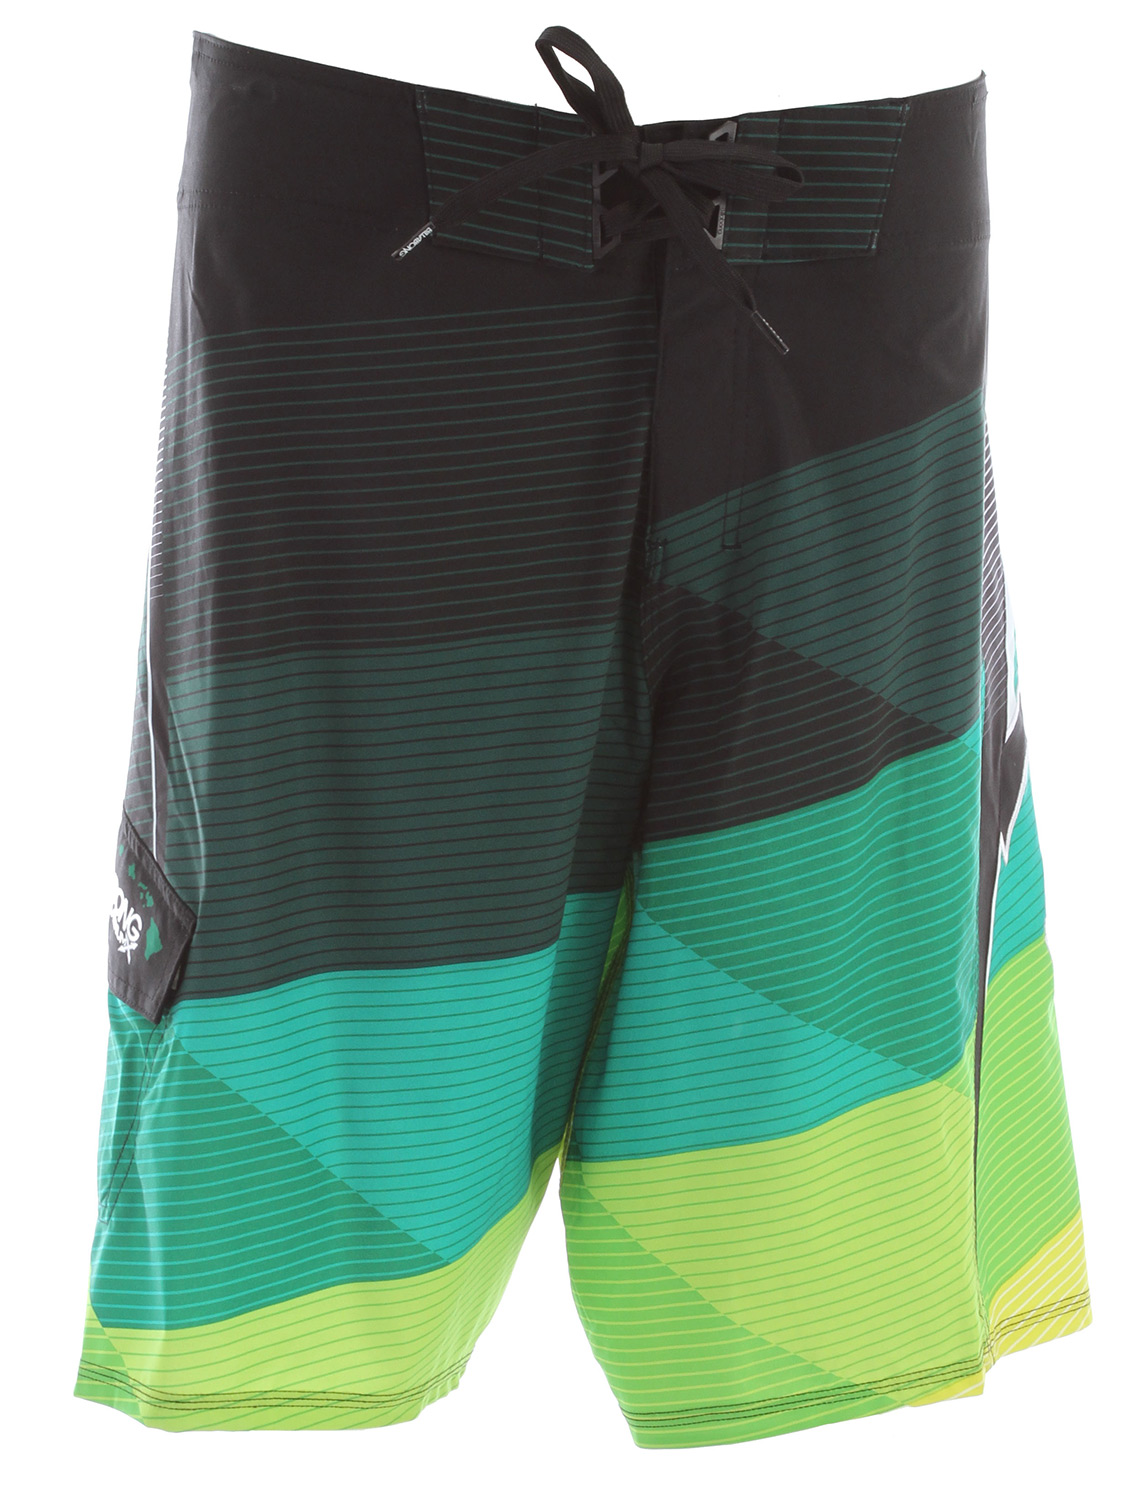 "Surf Key Features of the Billabong Conquer Boardshorts: 22"" Recycler Zero Gravity Recycler Platinum X Quad Stretch boardshort with an engineered geometric print and wave logo applique Recycler ZG fabric is light-weight with H2 Repel and epic stretch 87% recycled polyester/13% spandex - $48.95"